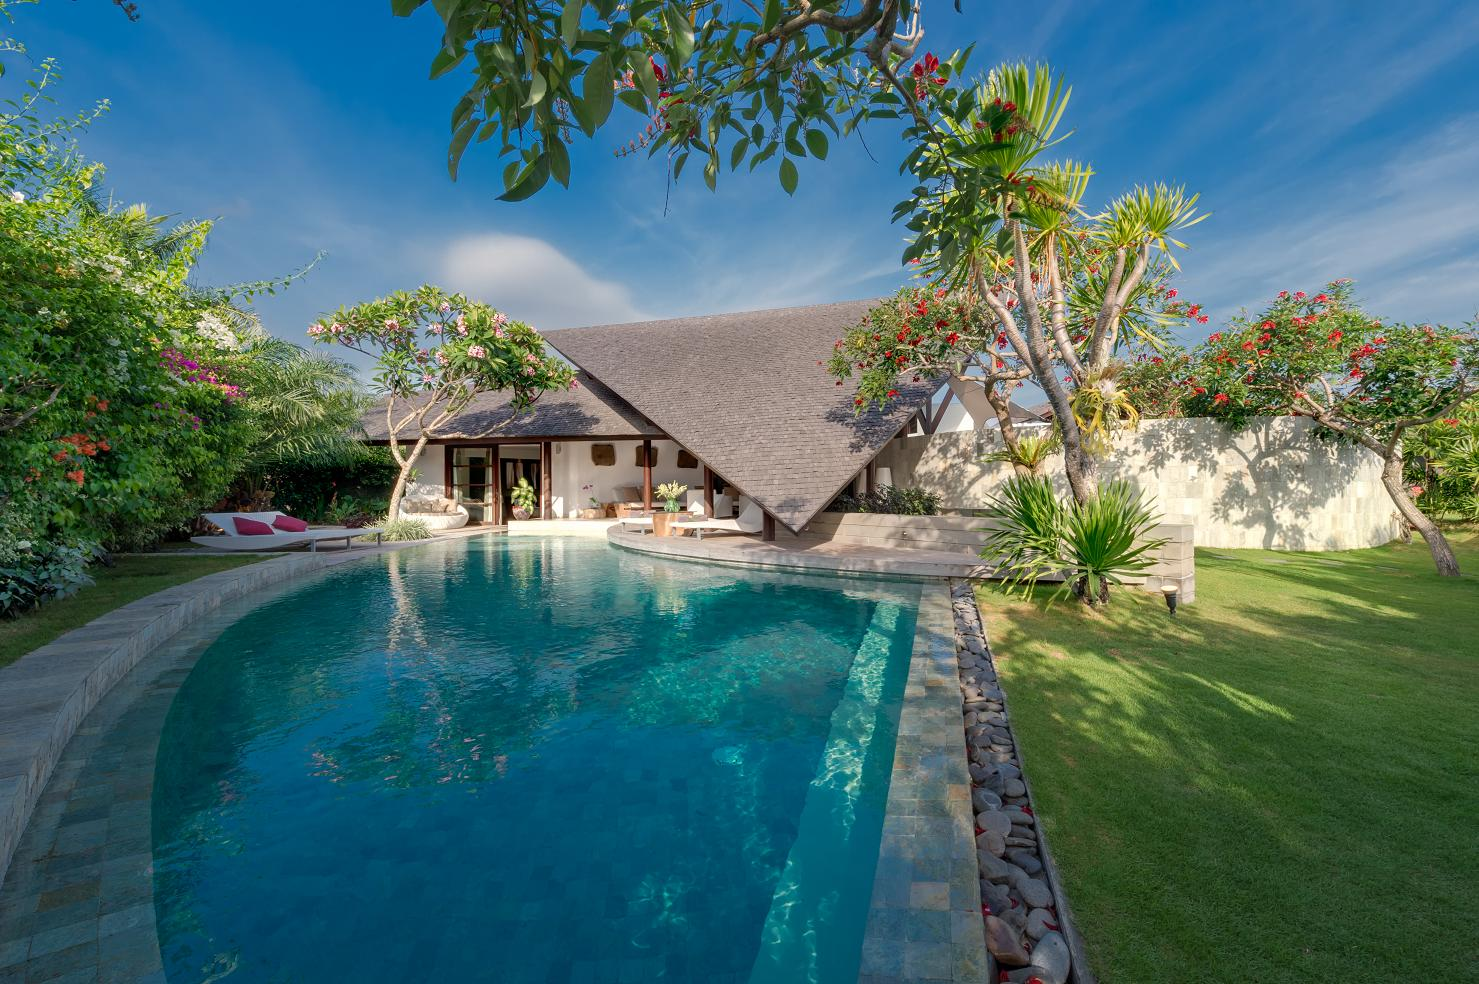 The Layar - 3 Bedroom Villa - Pool and Garden - Seminyak, Bali